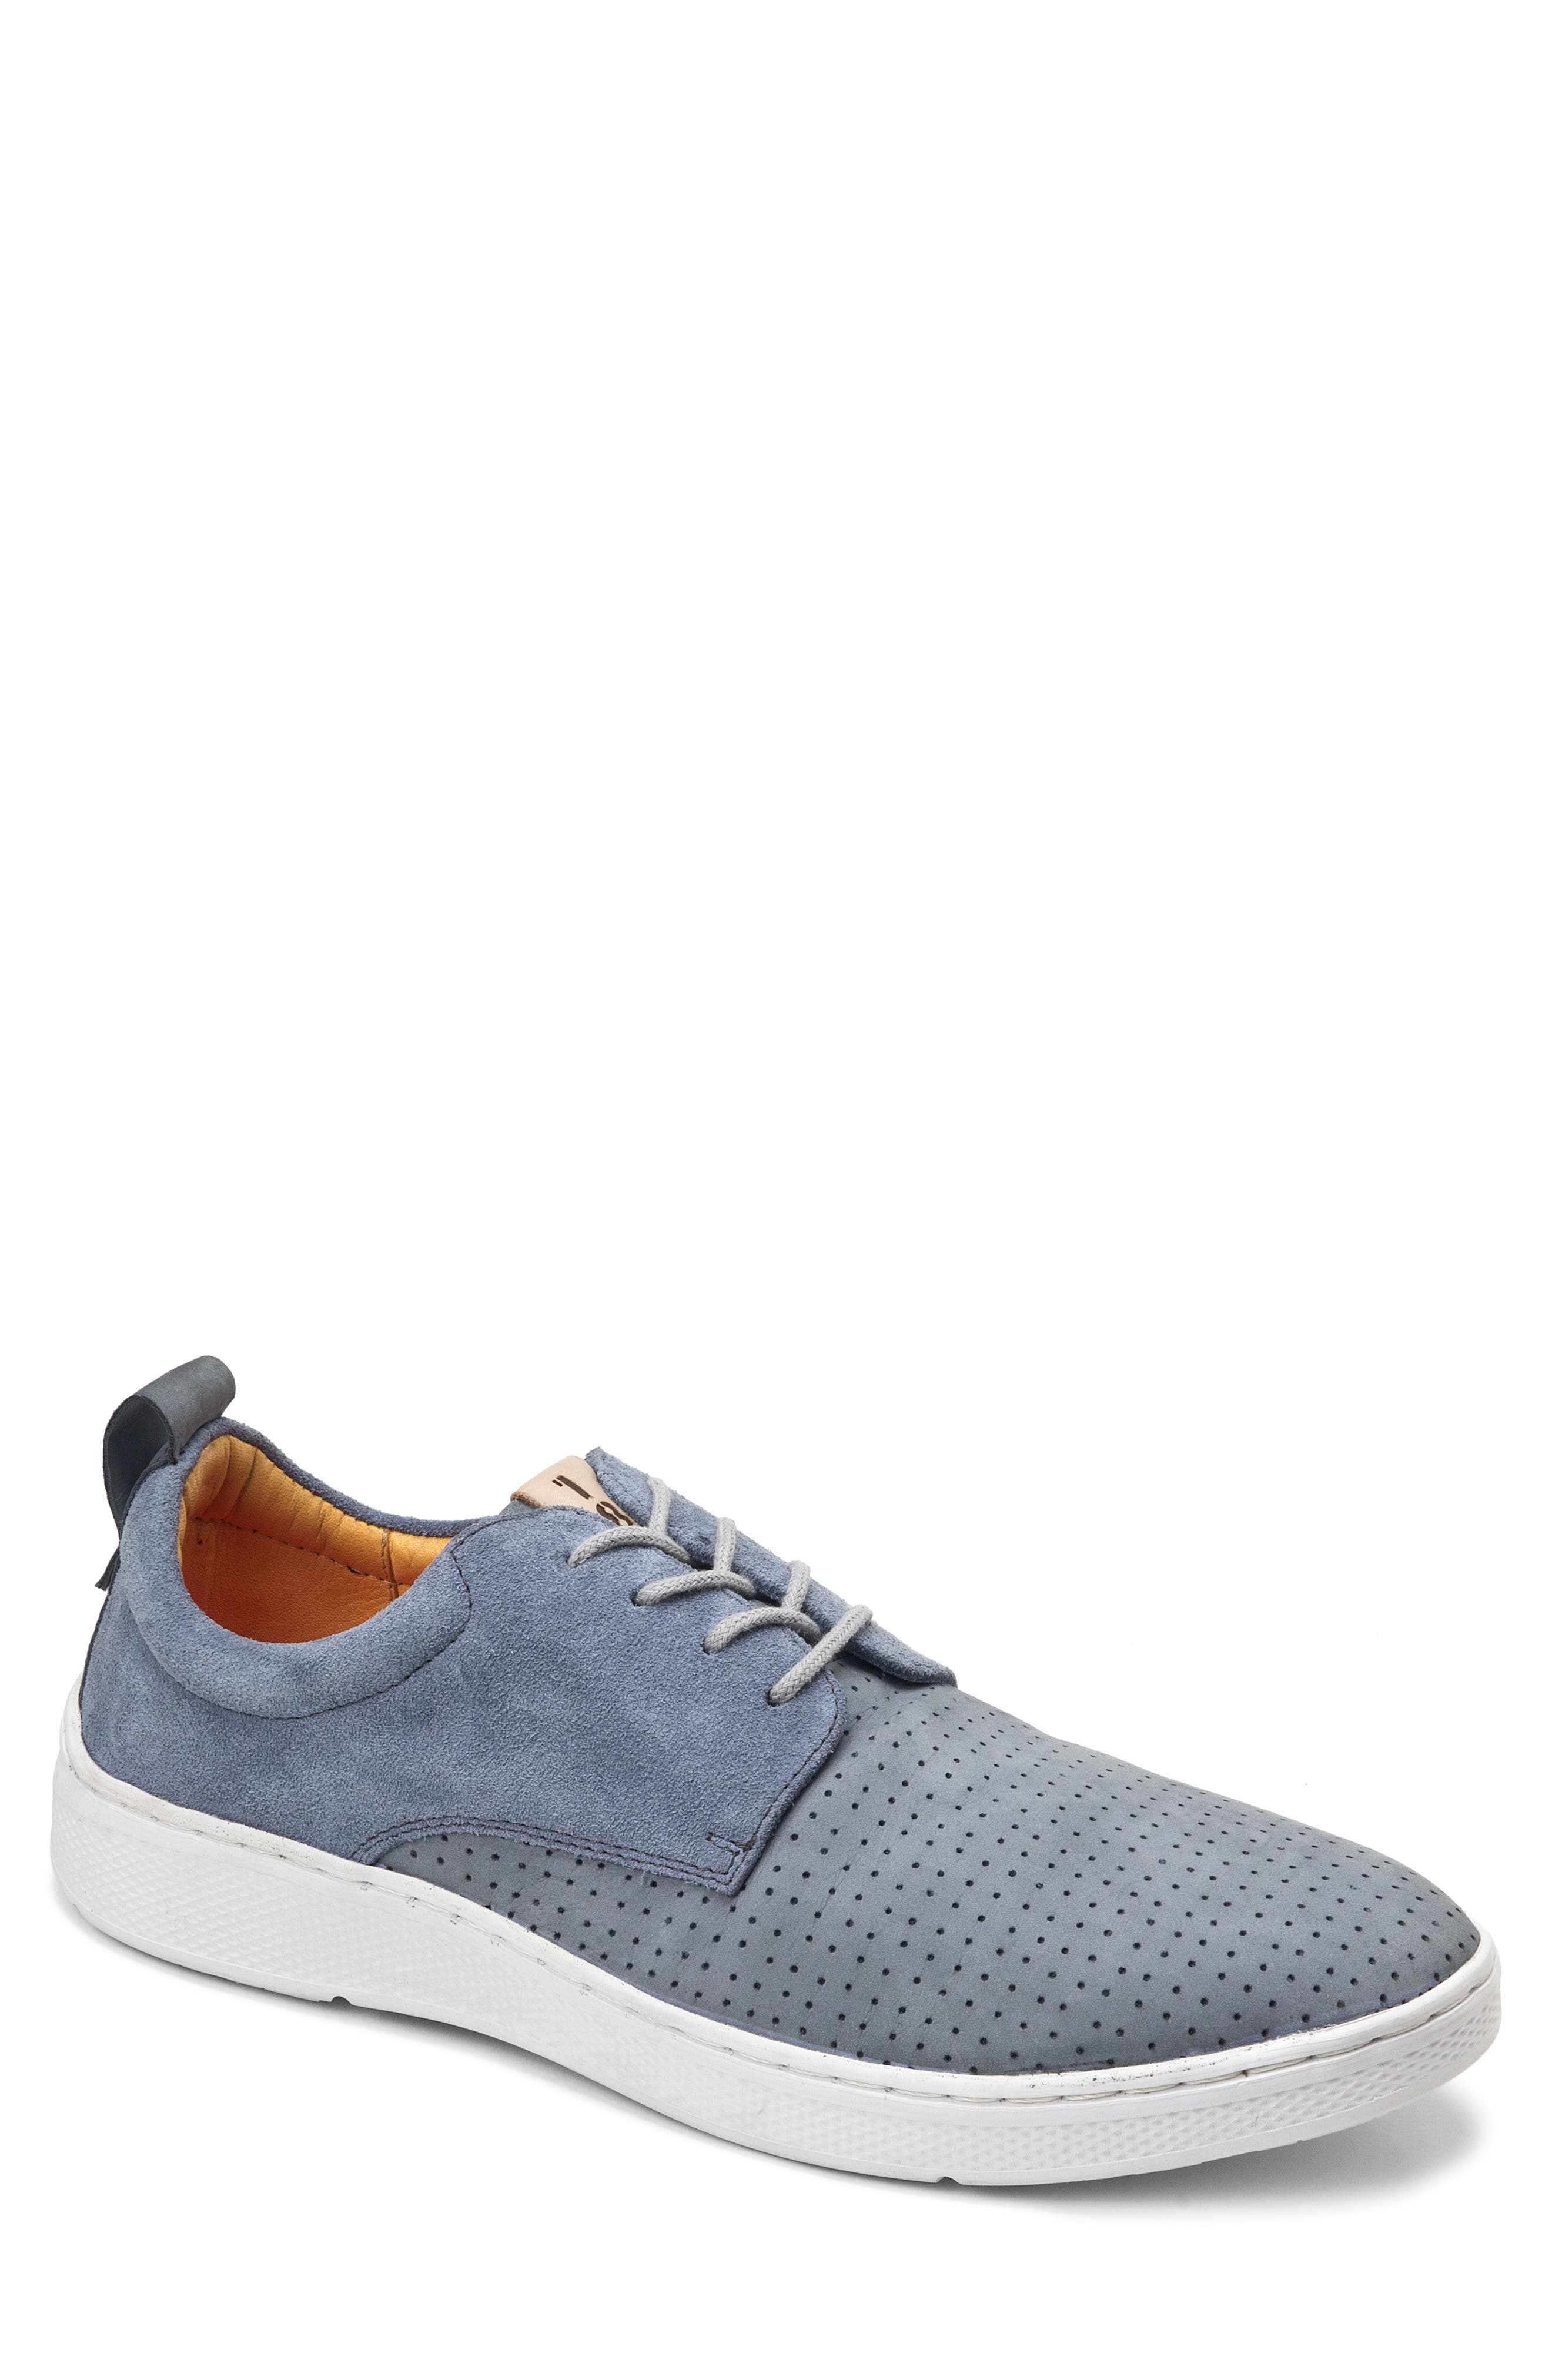 SANDRO MOSCOLONI, Mack Perforated Derby, Main thumbnail 1, color, GREY LEATHER